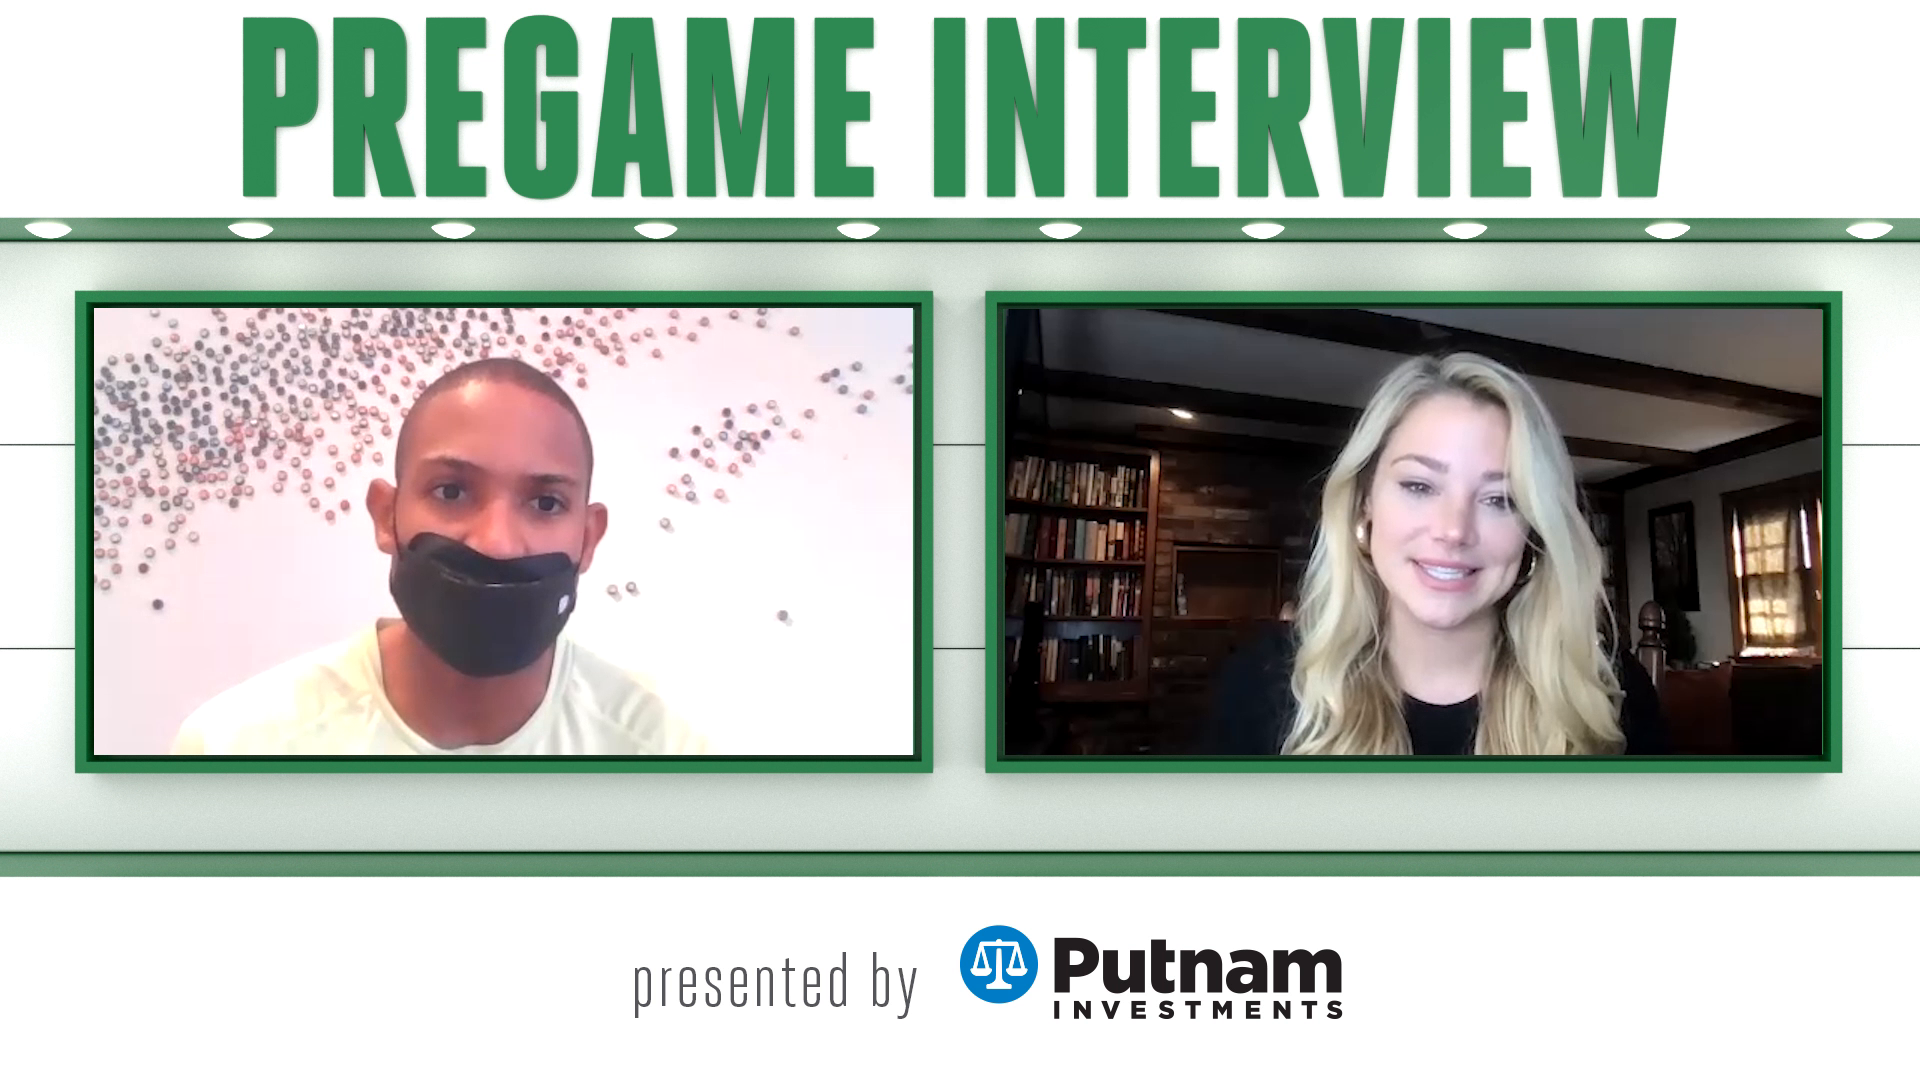 10/24 Putnam Pregame Interview: Staying Focused